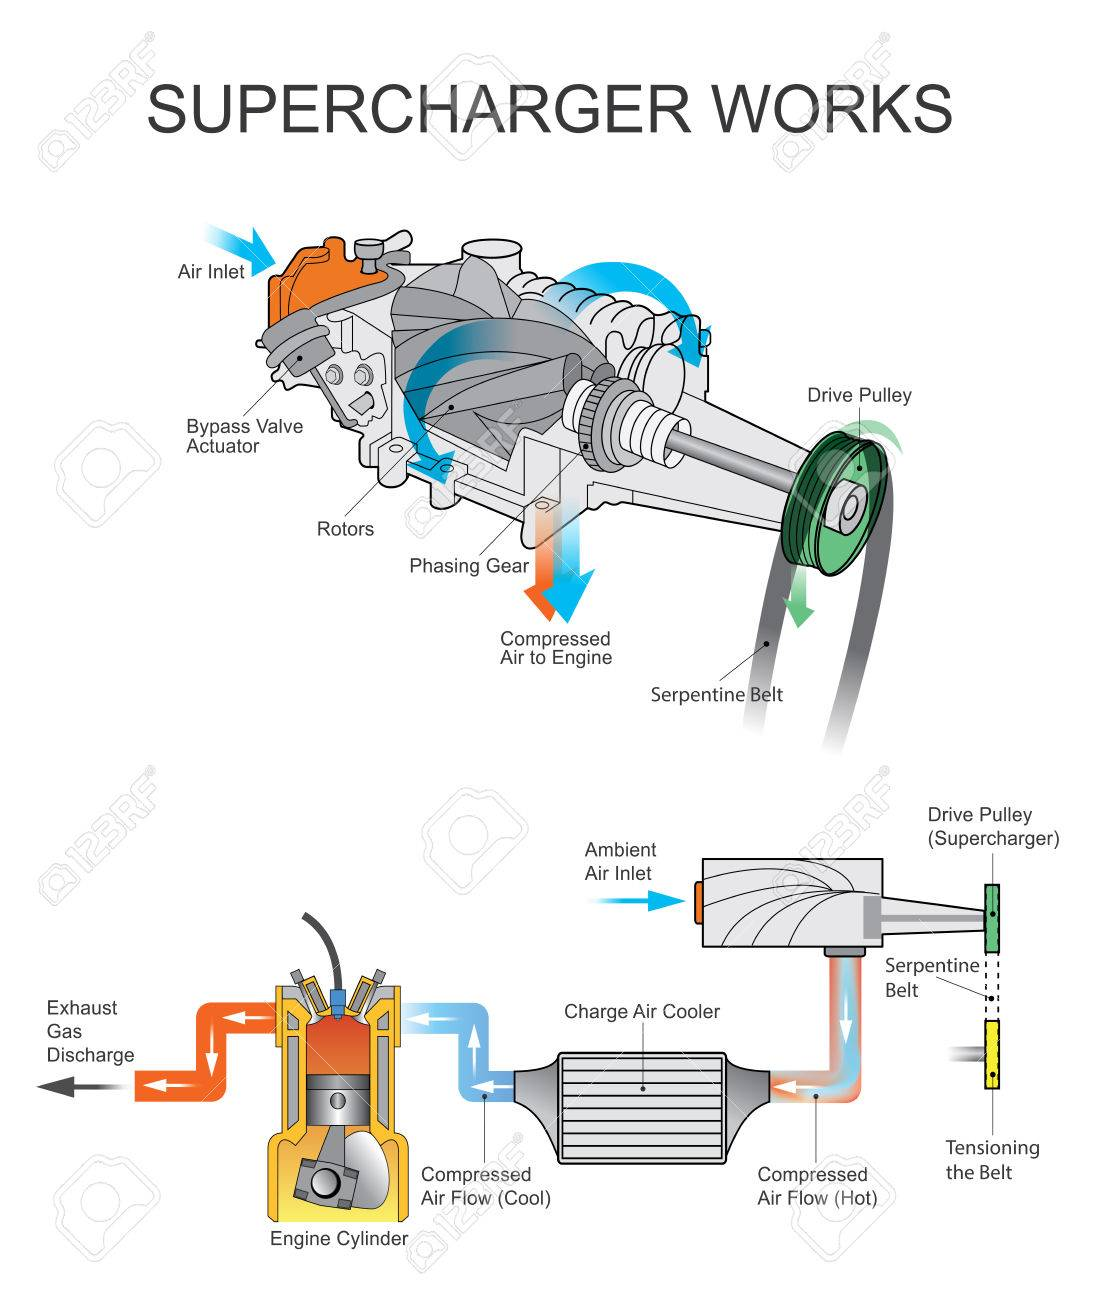 hight resolution of a supercharger is an air compressor that increases the pressure or density of air supplied to an internal combustion engine this gives each intake cycle of